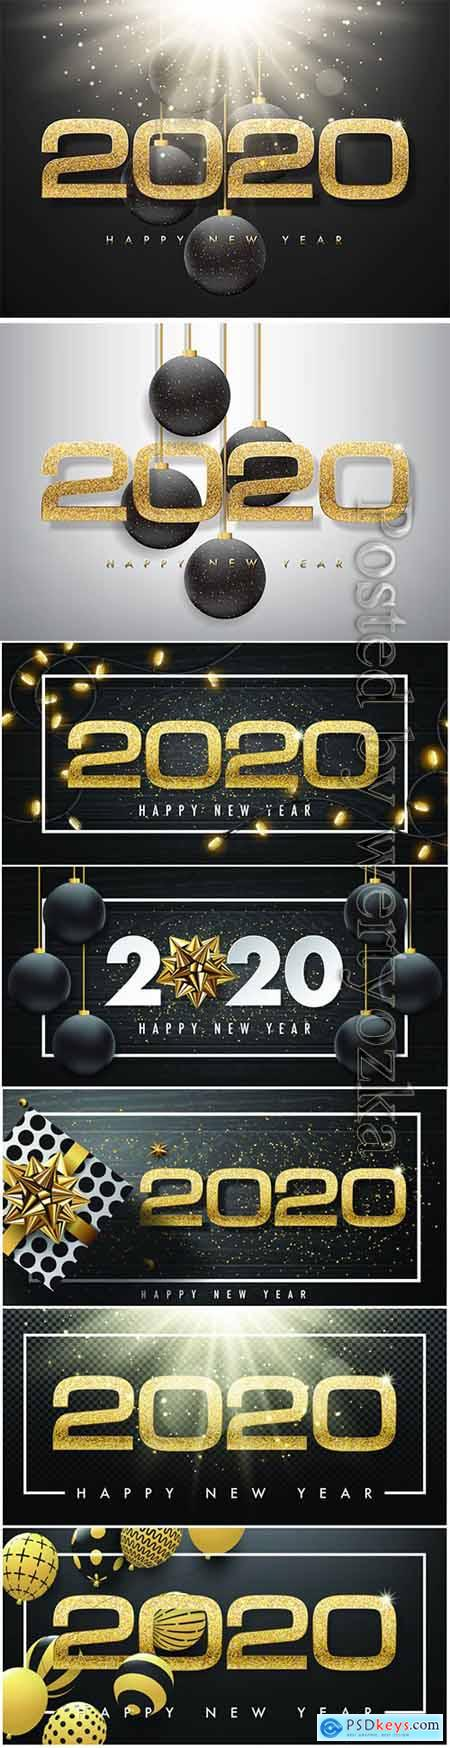 2020 festive golden decor in vector